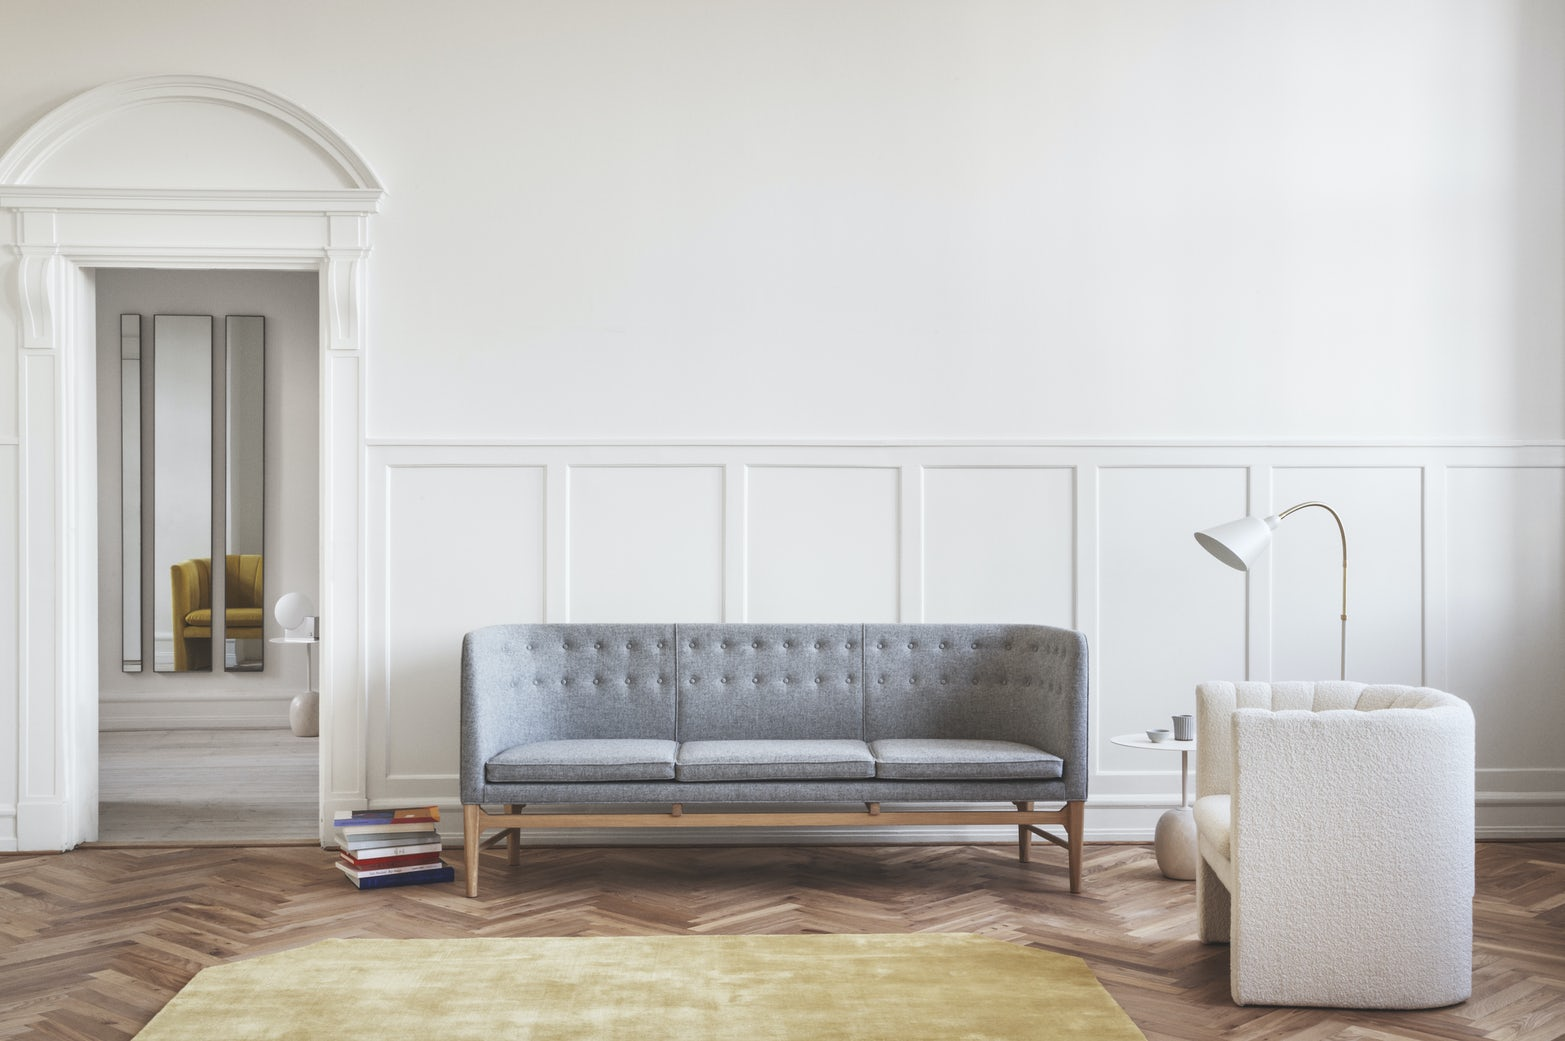 Mayor-sofa-AJ5-Arne-Jacobsen-Flemming-Lassen-andtradition-6